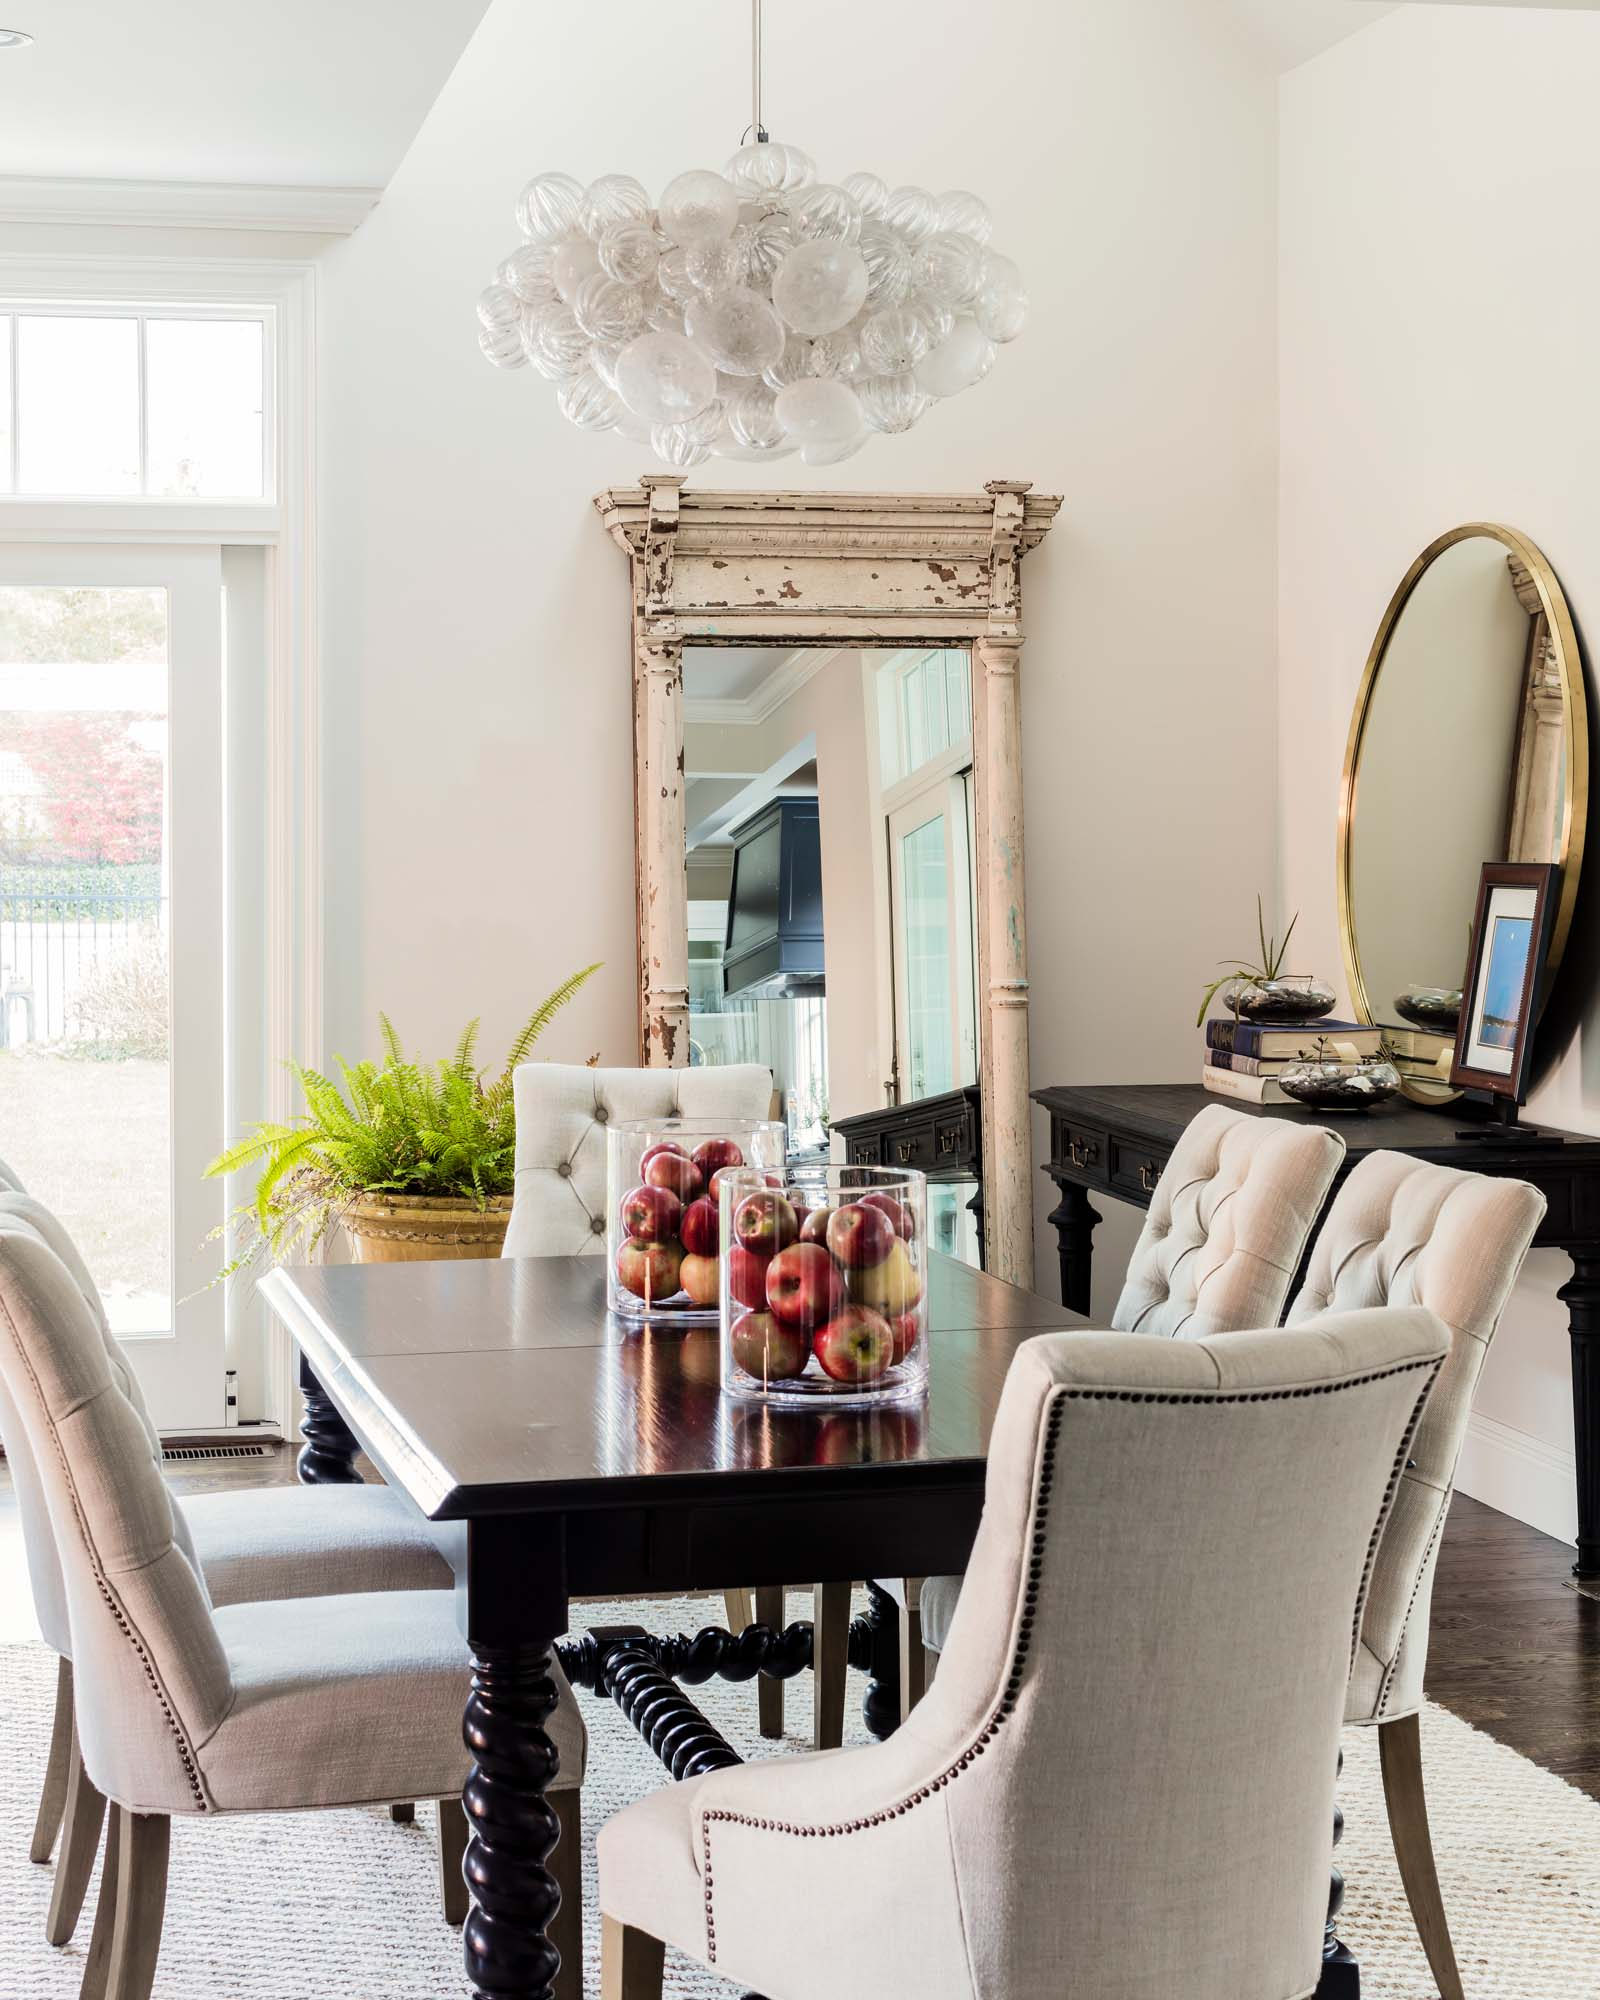 Dining room with wooden table, chairs, white painted walls and vintage mirror, williams sonoma table, rh, restoration hardware, martine, martine chair, apple, red apple, french planter, brim field, black oak, custom light, glass bubble, jute rug, wool rug